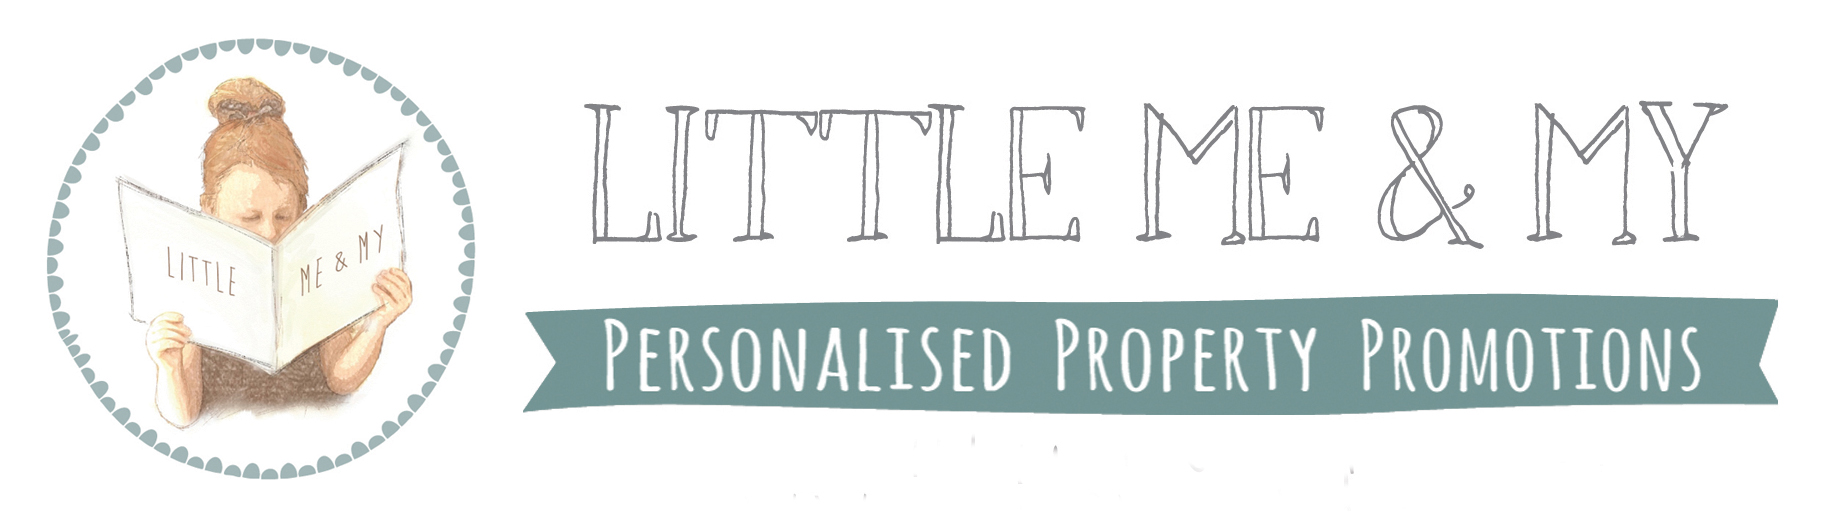 LITTLE ME & MY PROPERTY PROMOTIONS